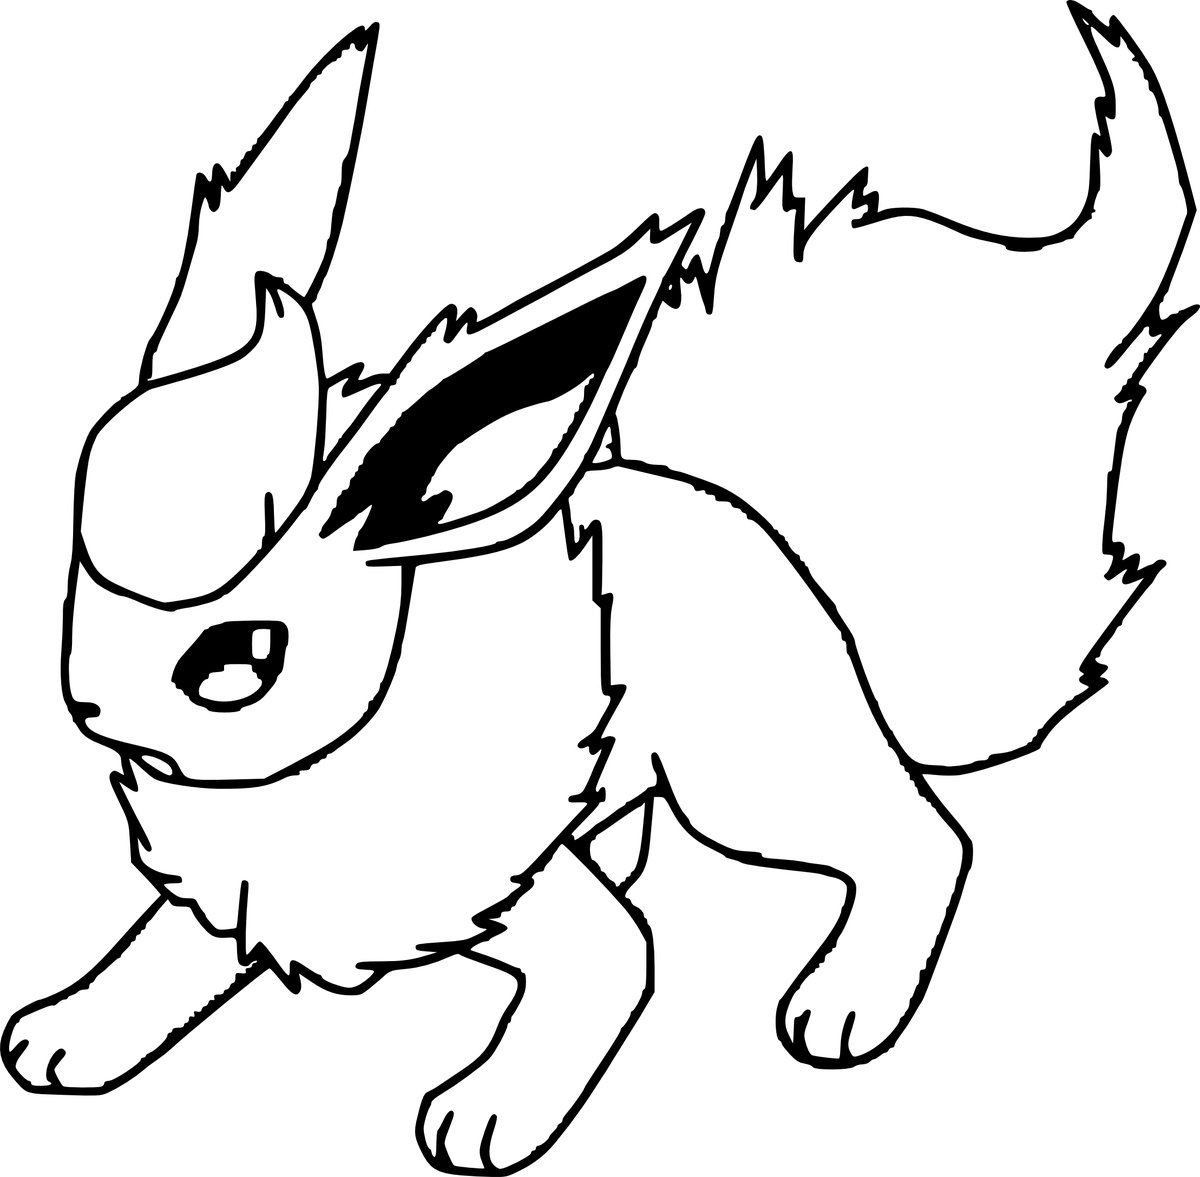 flareon coloring pages Flareon Coloring Pages   Bing images